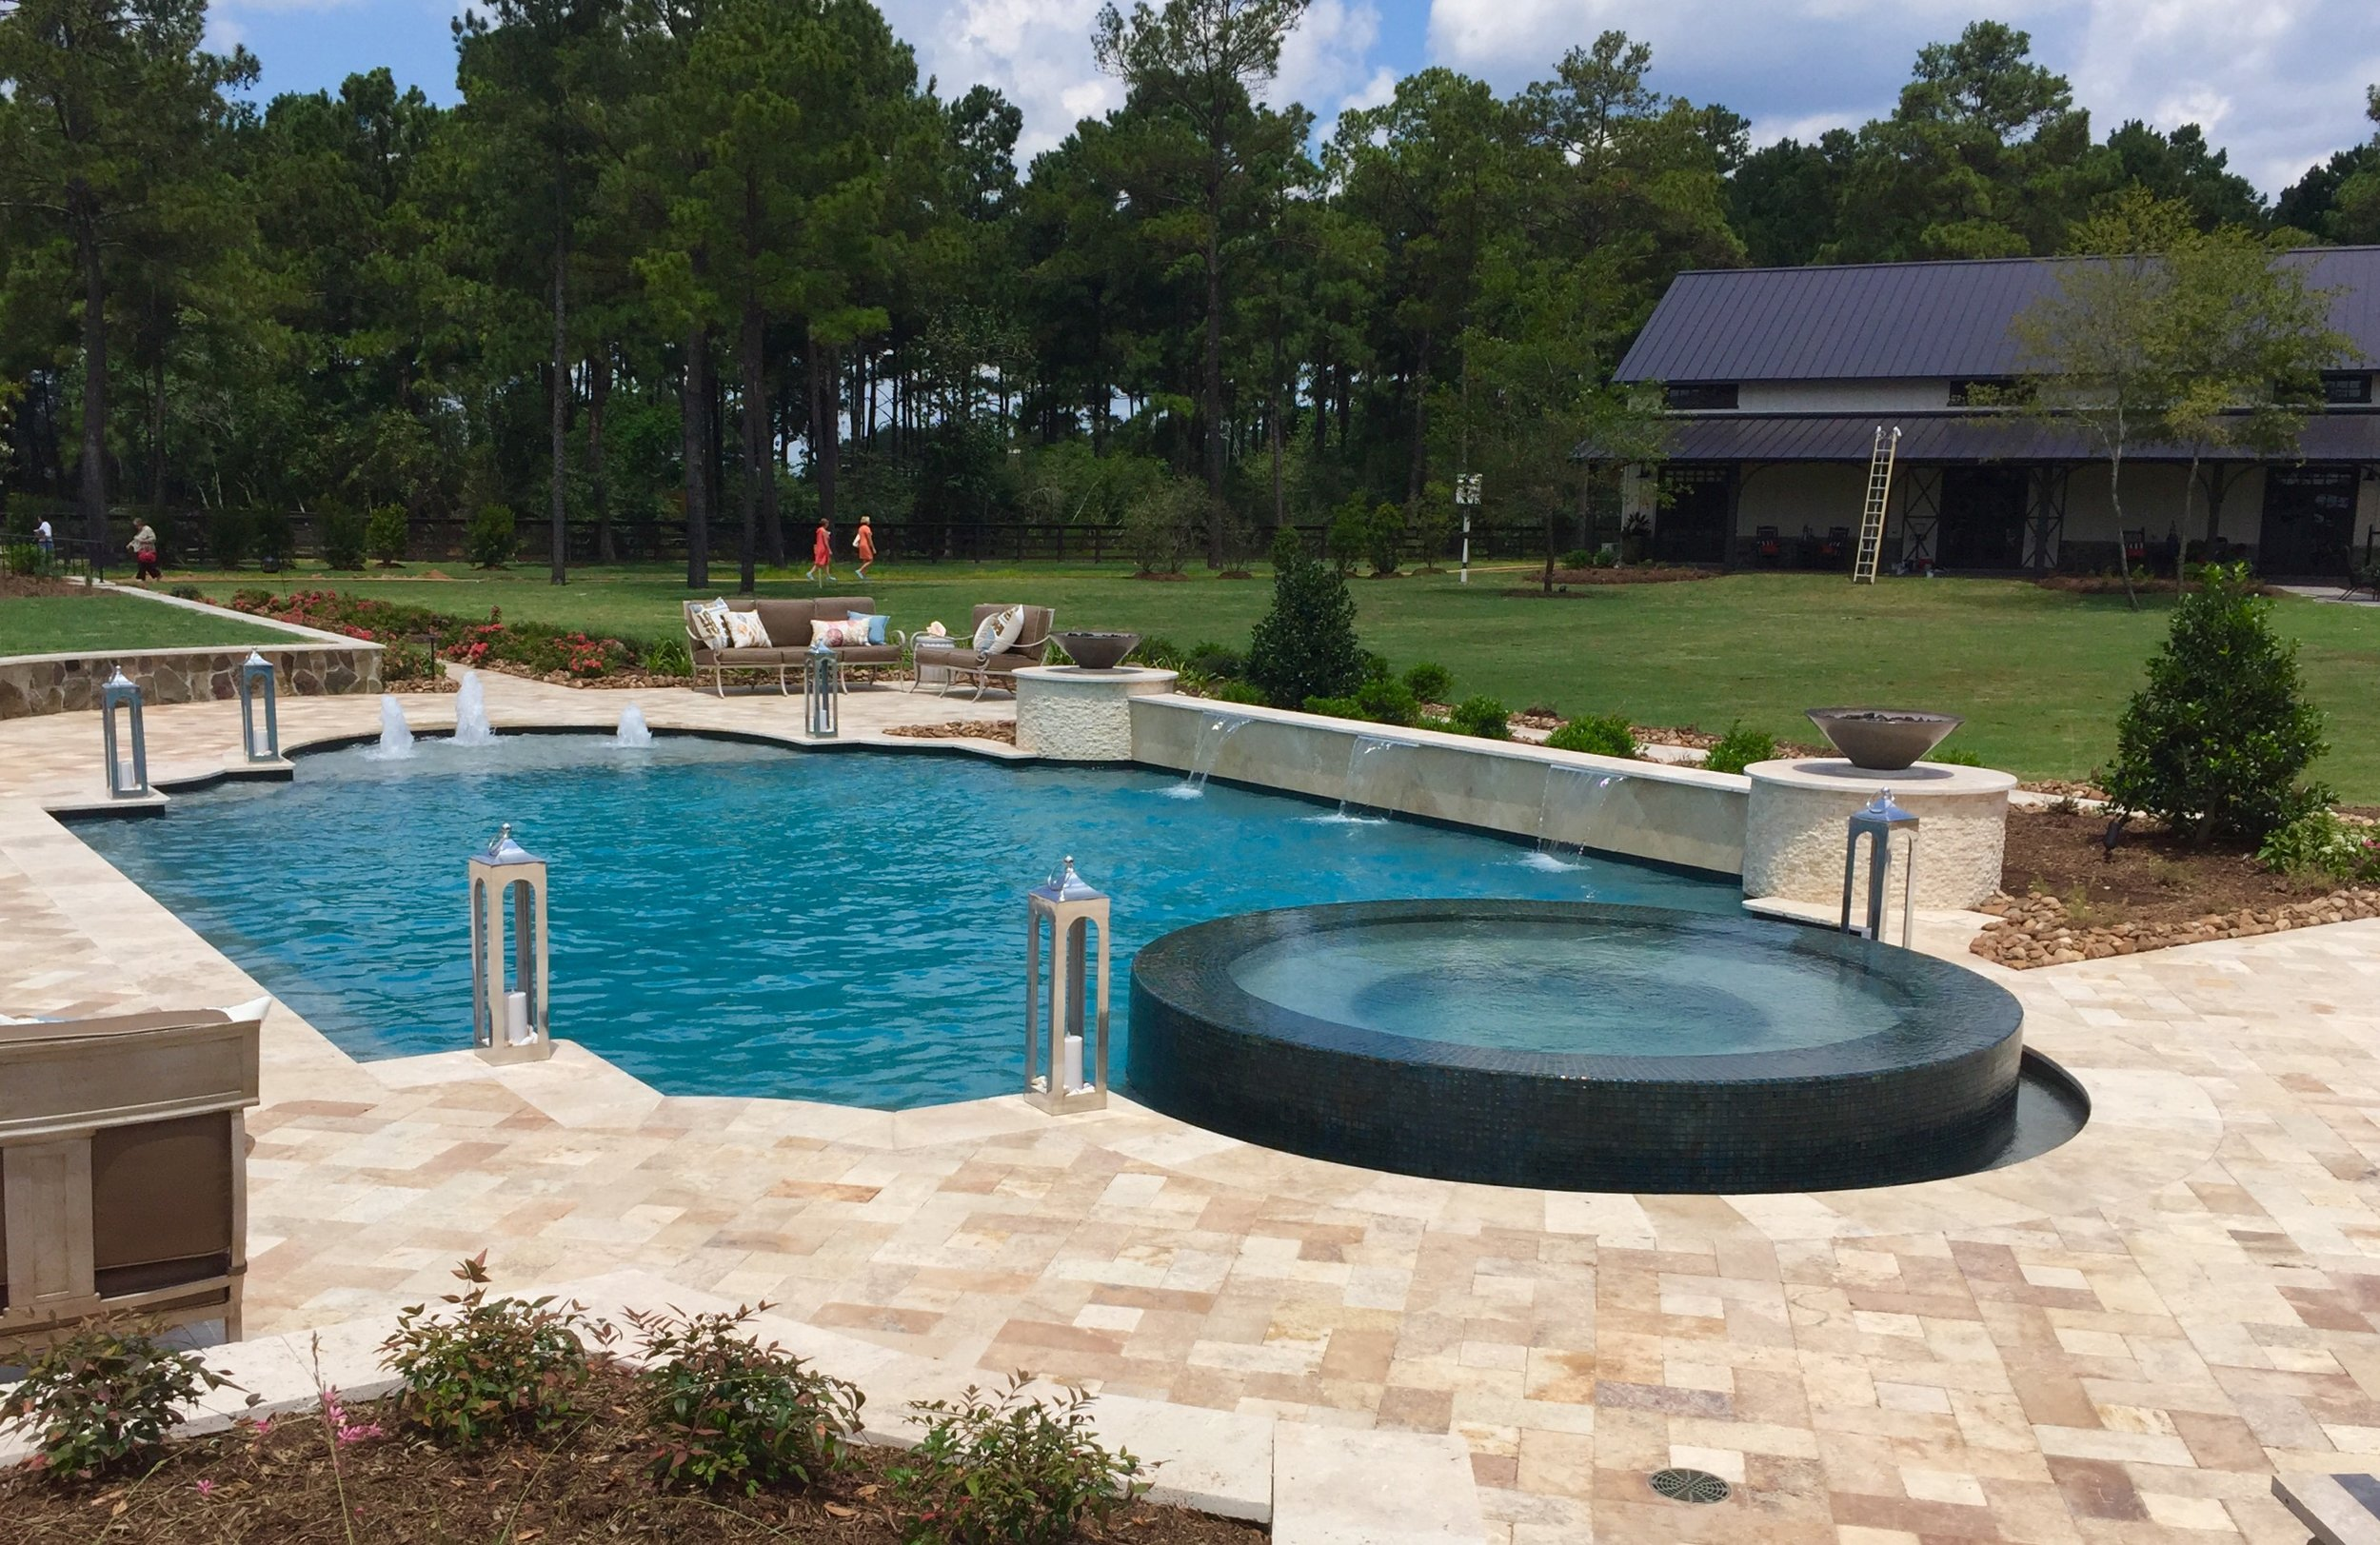 Pool and outdoor grounds designed by Smelek Design